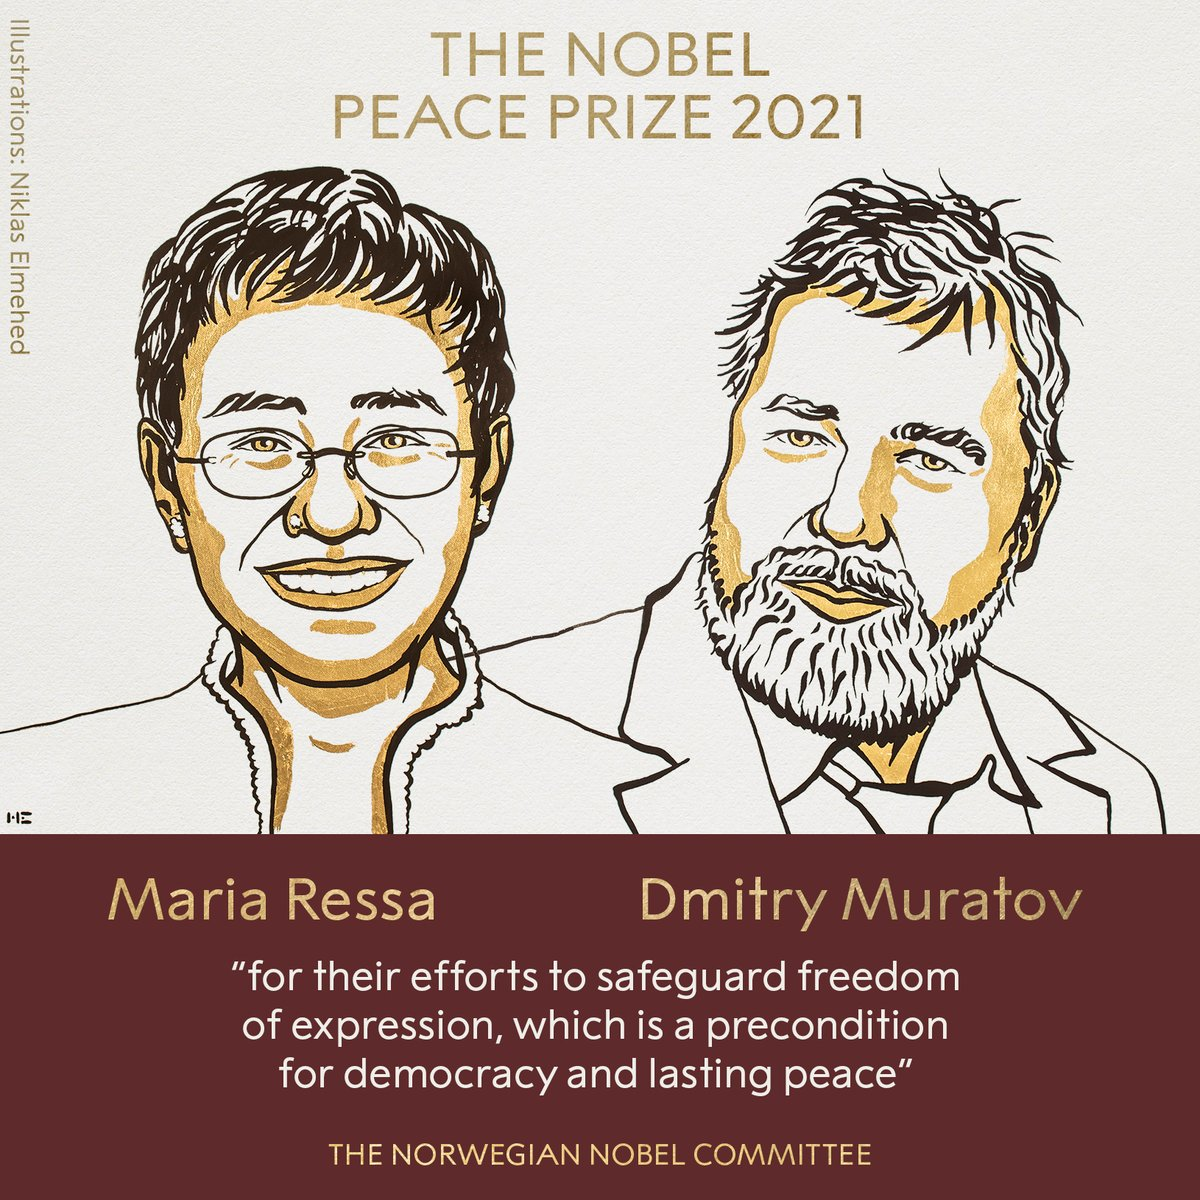 Congratulations to Maria Ressa and Dmitry Muratov. This award is a tribute to their extraordinary courage and the enduring value of fact-based journalism and freedom of expression, which is under threat in far too many places today.